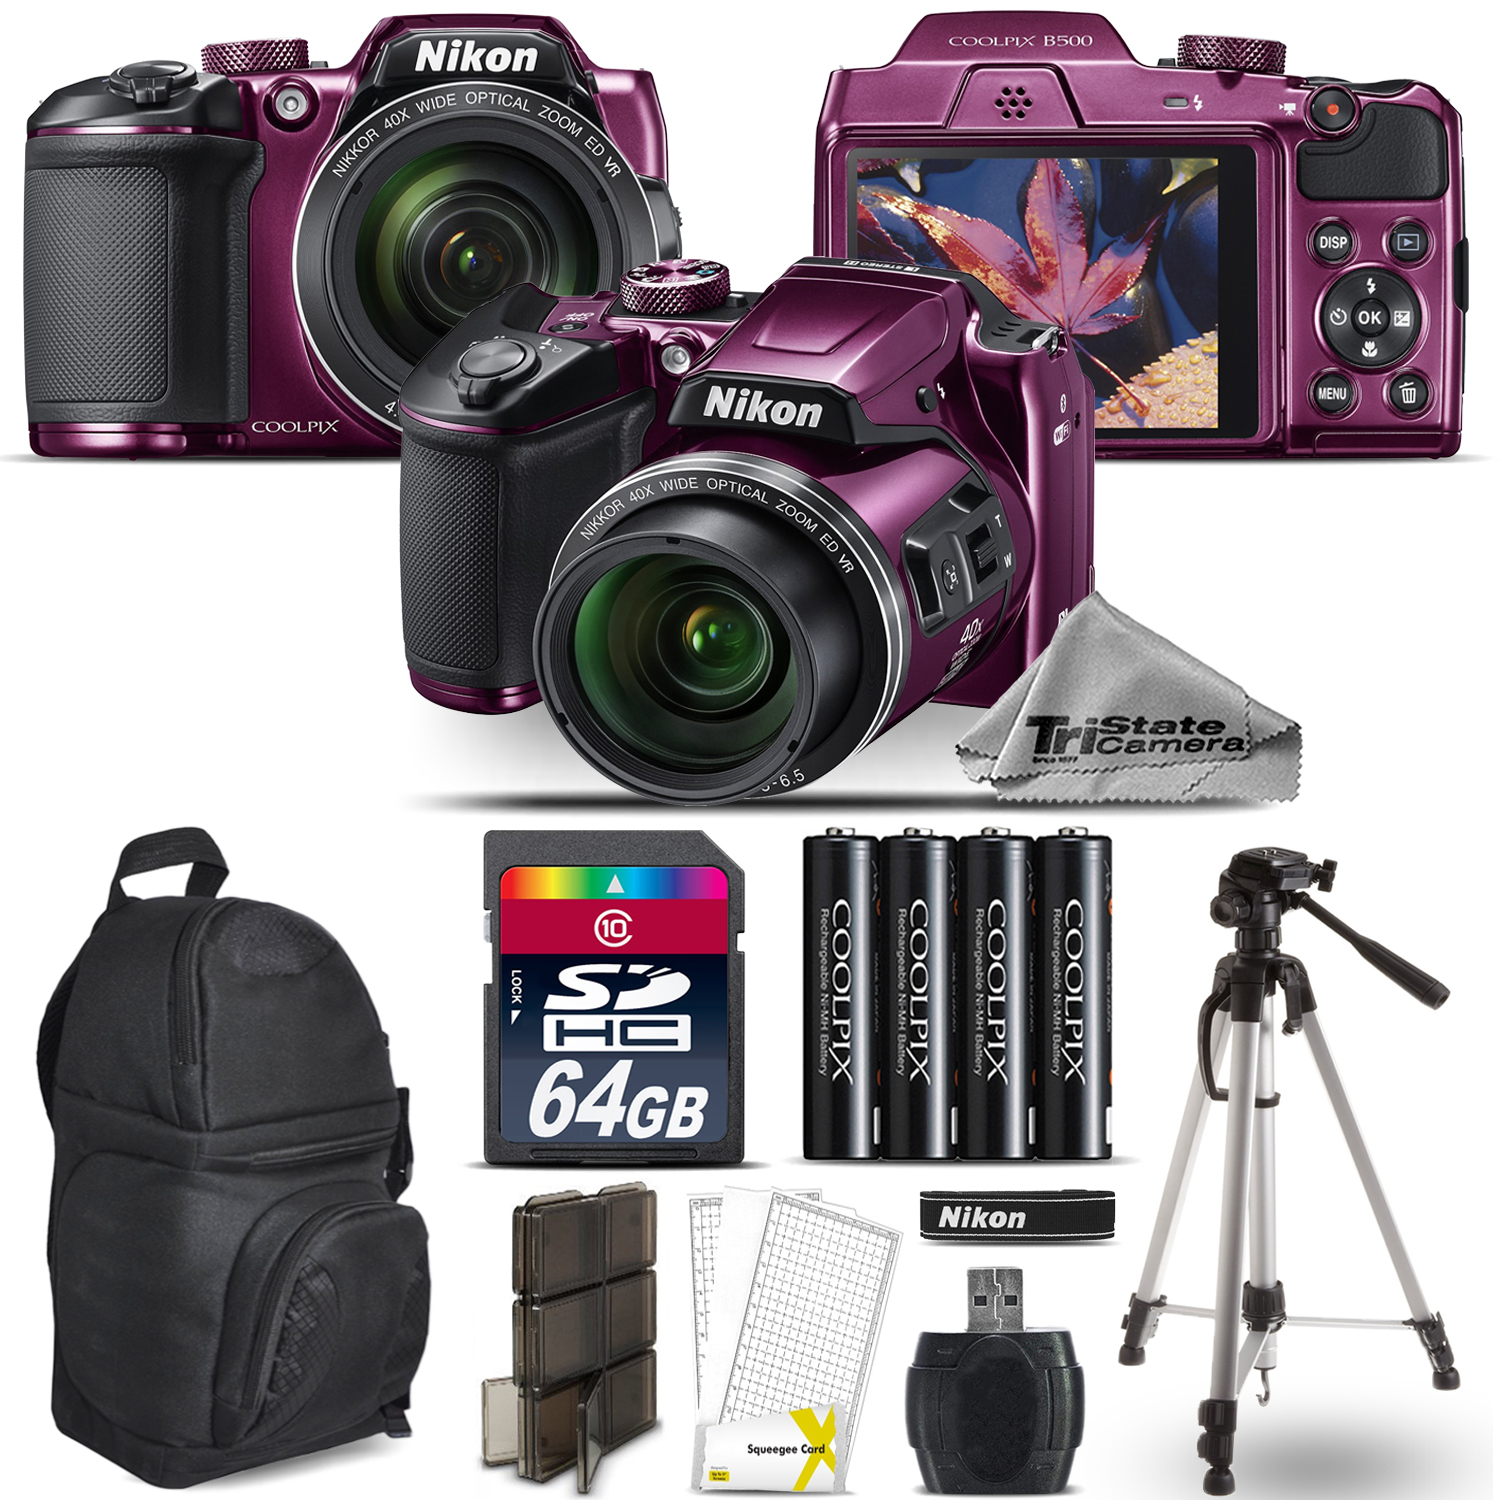 Nikon COOLPIX B500 Plum Camera 40x Optical Zoom + Tripod + Backpack - 64GB Kit